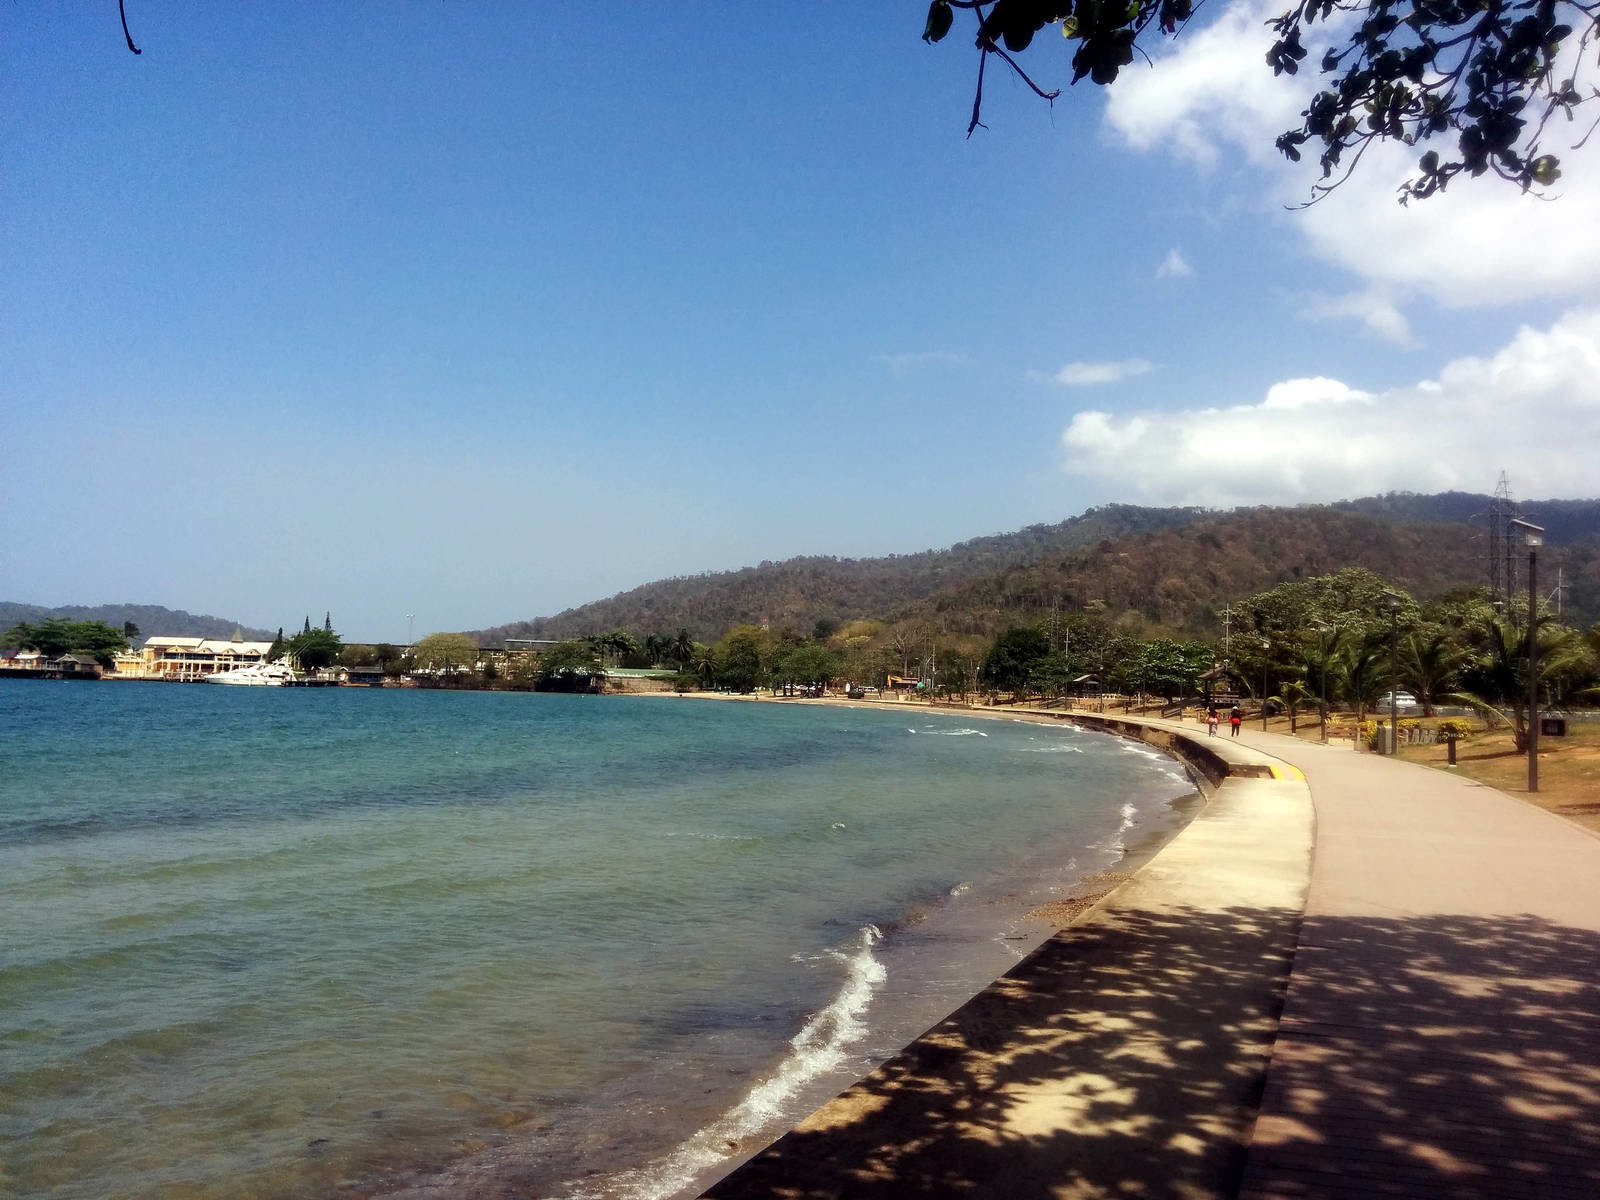 Chaguaramas BoardWalk and Williams' Bay